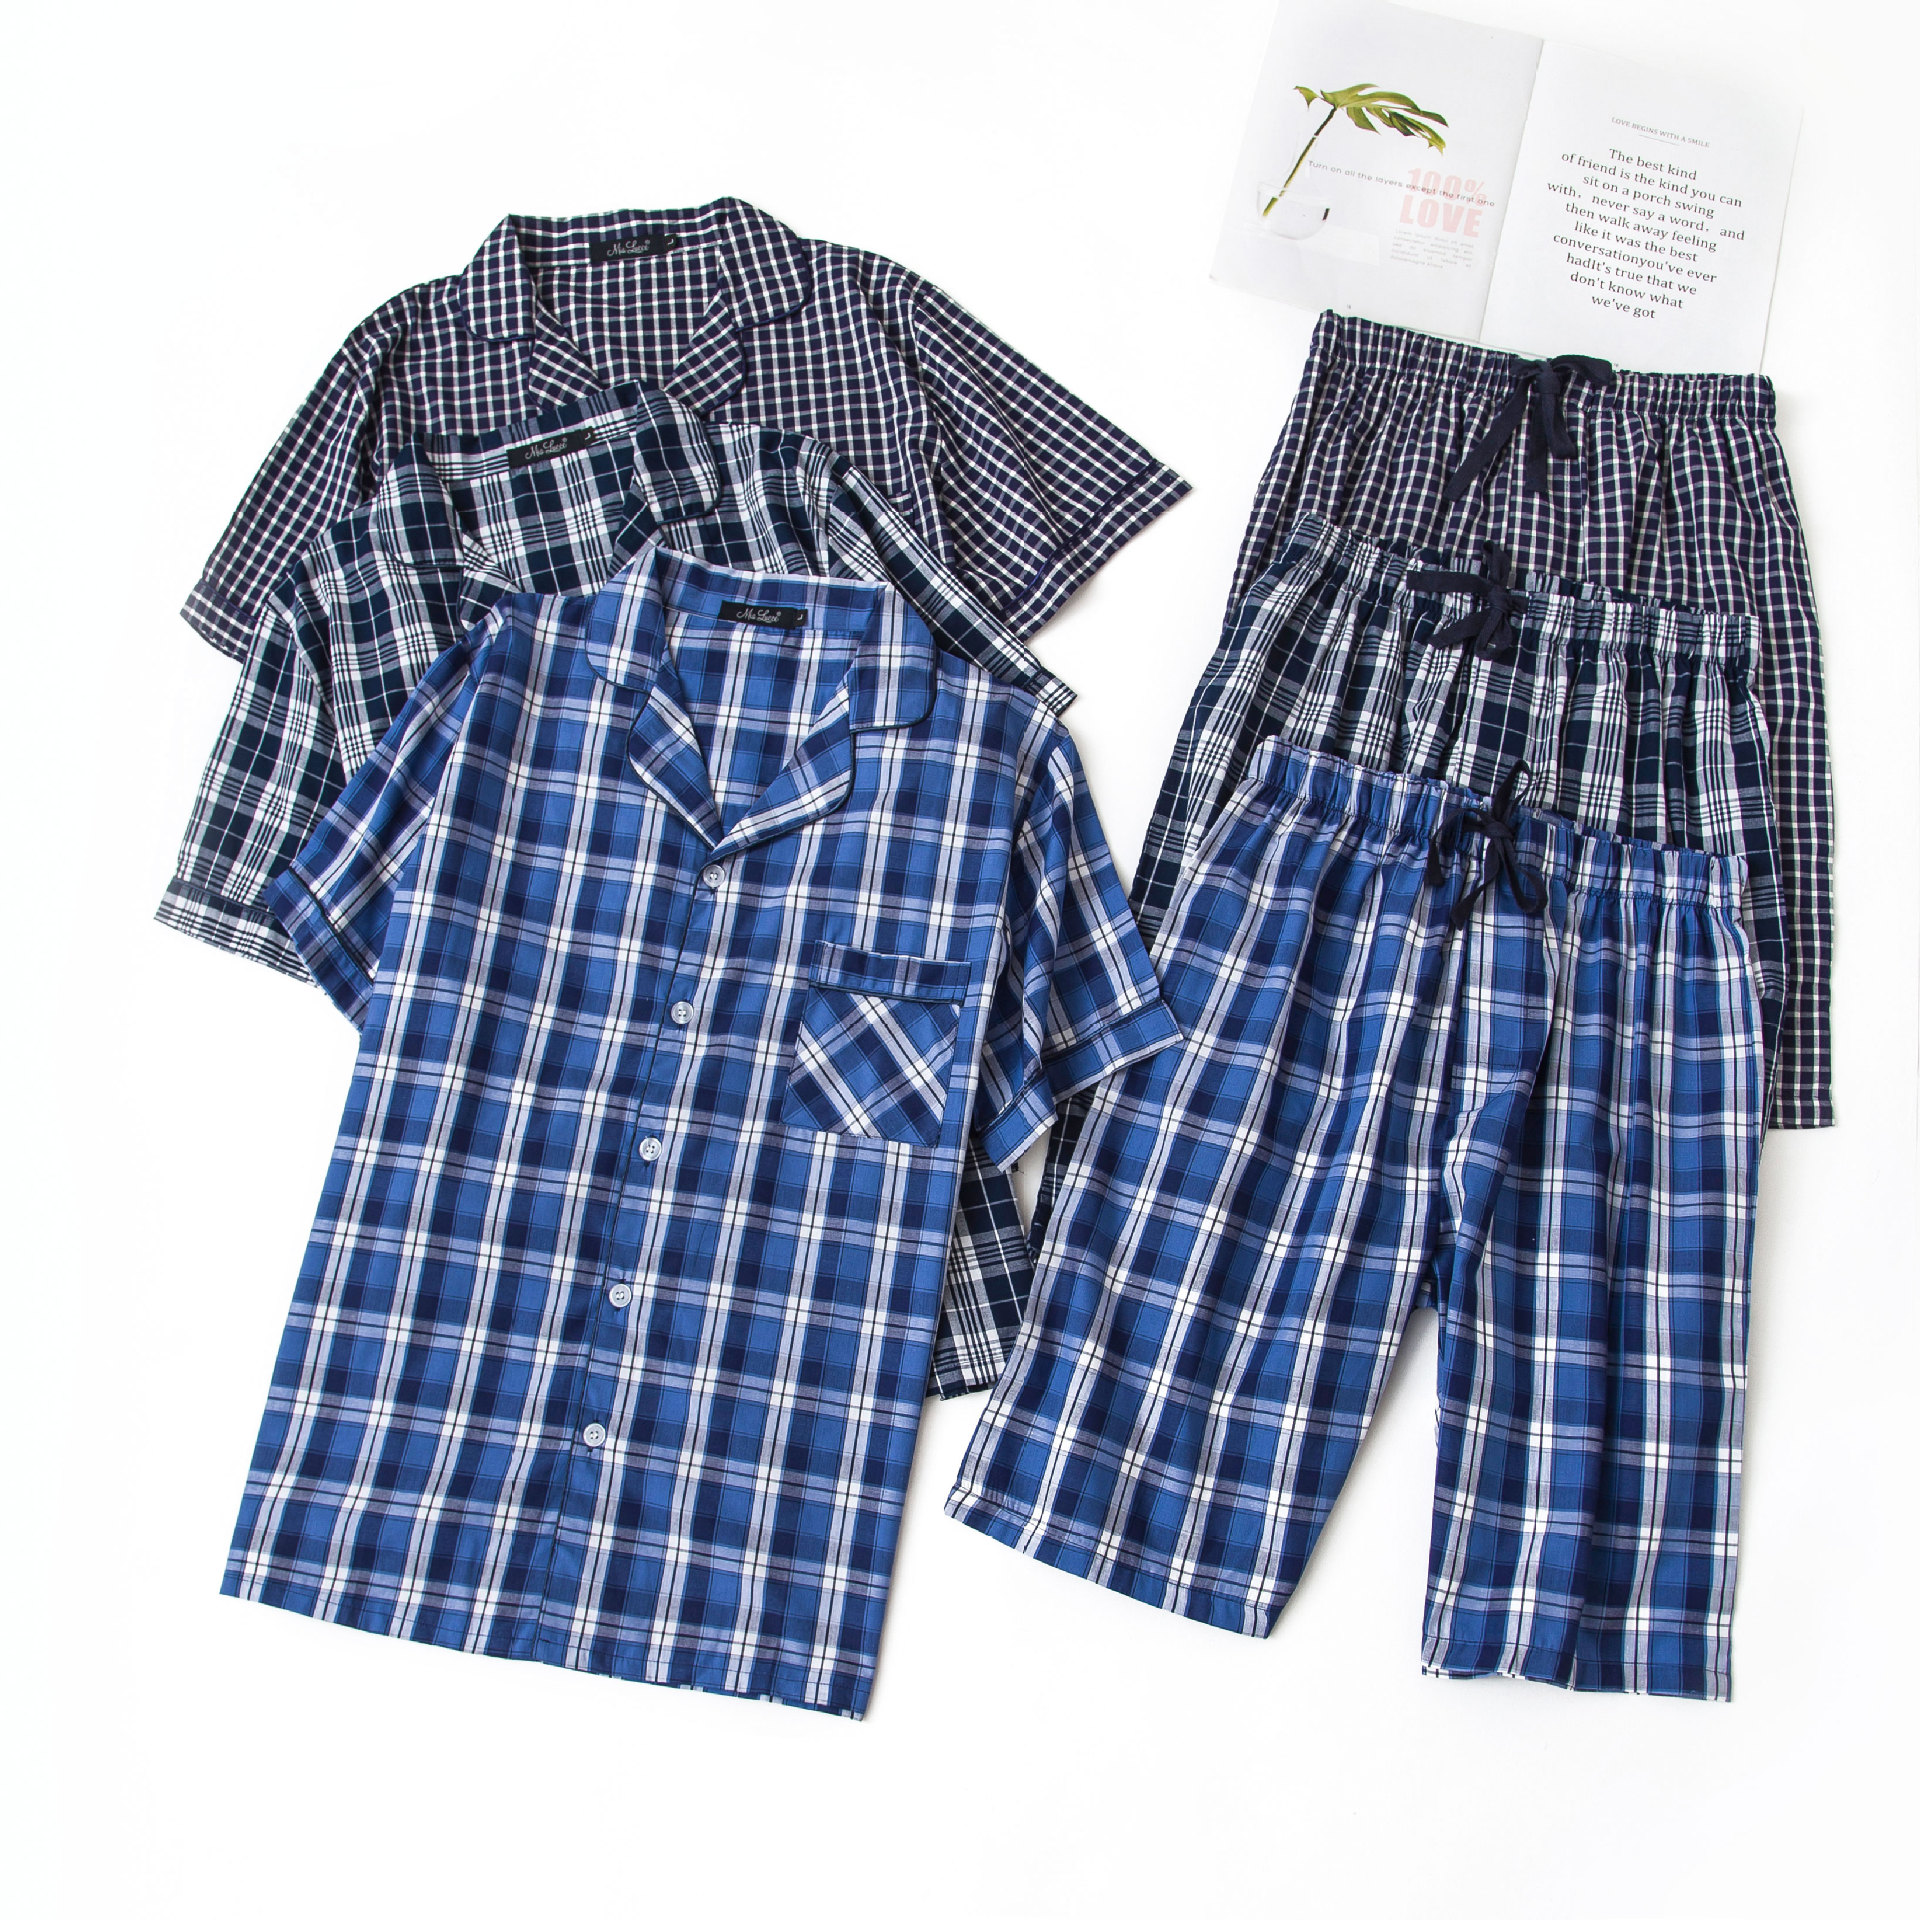 Rapture Plus Size 100% Cotton Mens Summer Woven Short-sleeved Shorts Pajamas Set Male Sleep Classic Plaid Style V-neck Home Sets Colours Are Striking Men's Sleep & Lounge